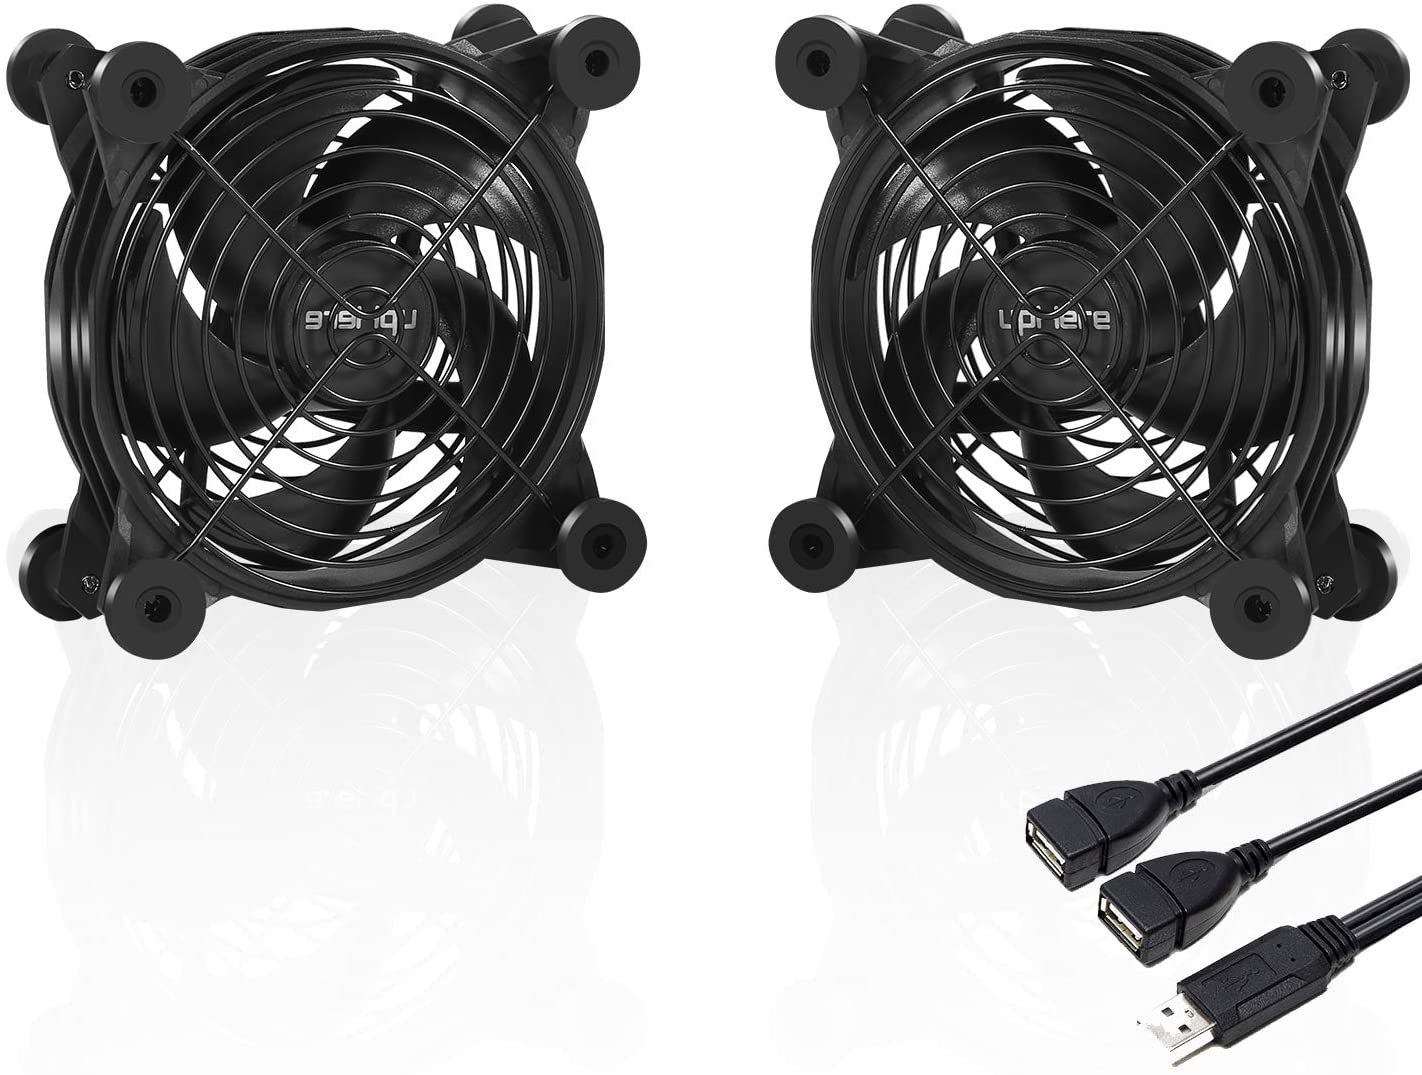 upHere U120 Silent Dual 120mm USB Fan for Computer Cases Computer Cabinet Playstation Xbox Cooling